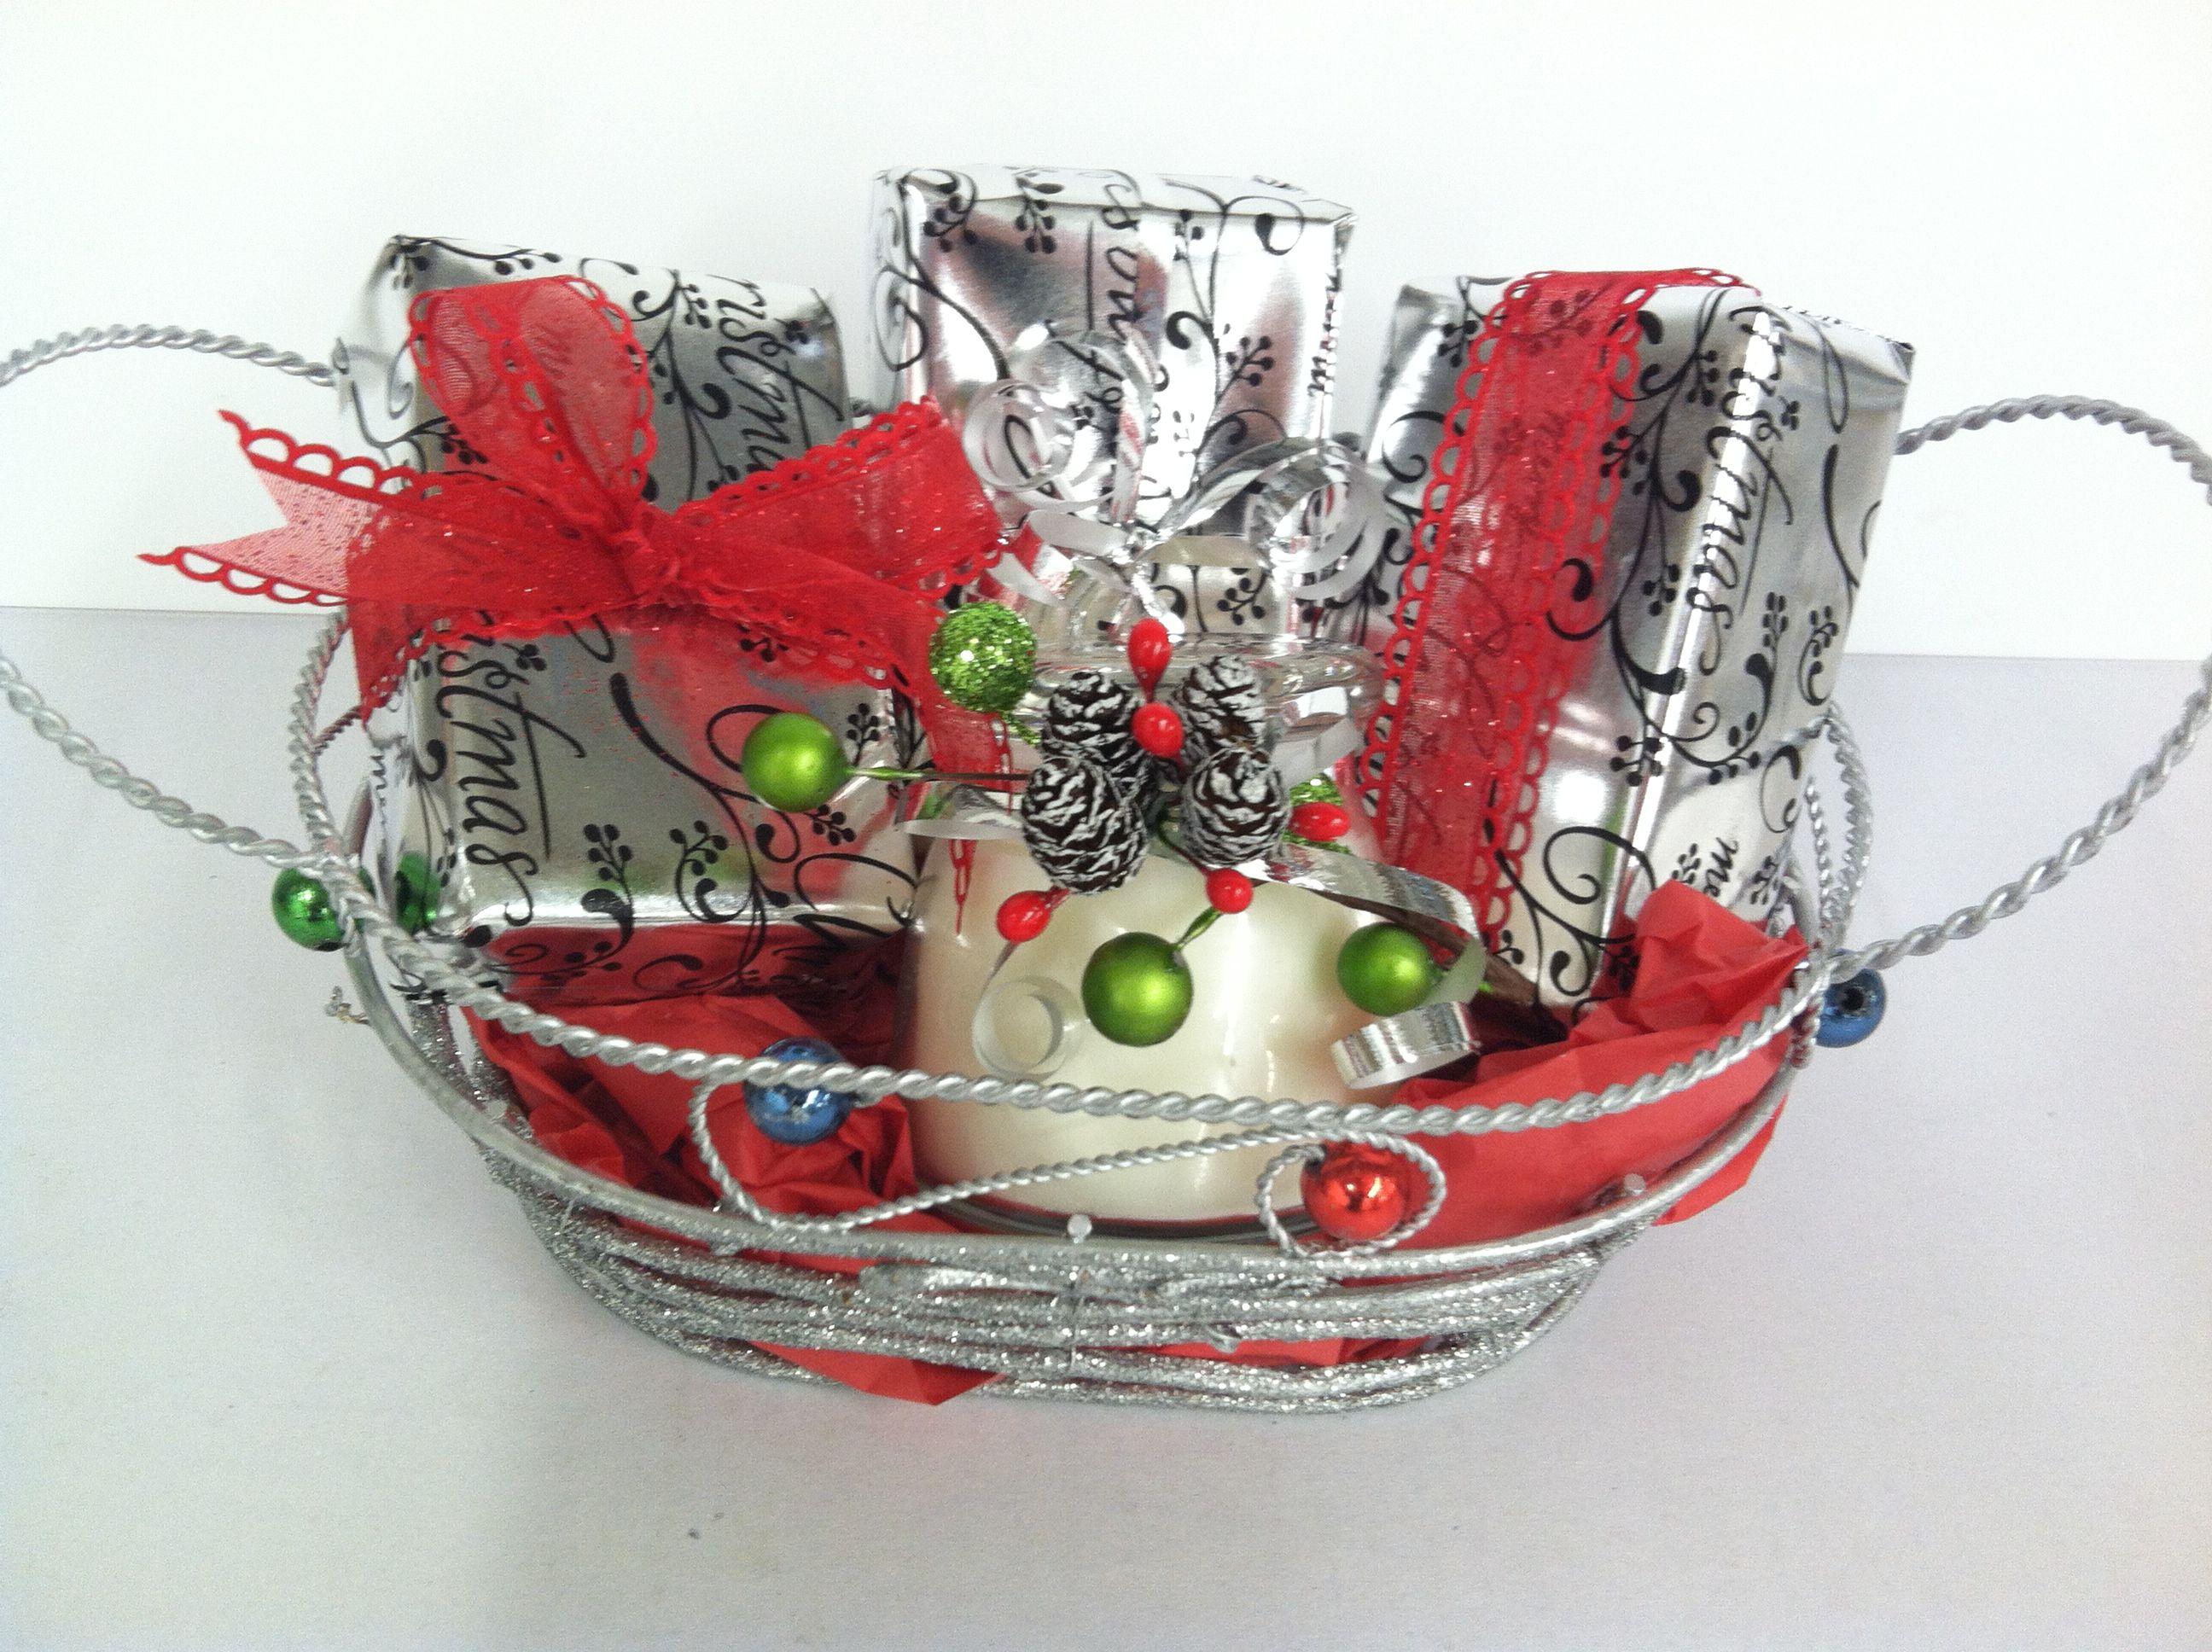 Great gift idea for a friend or I used it for a hostess gift.  A sparkly silver basket.  Homemade soaps wrapped in a great paper and tied up with pretty bows.  I added a highly scented candle that I make.